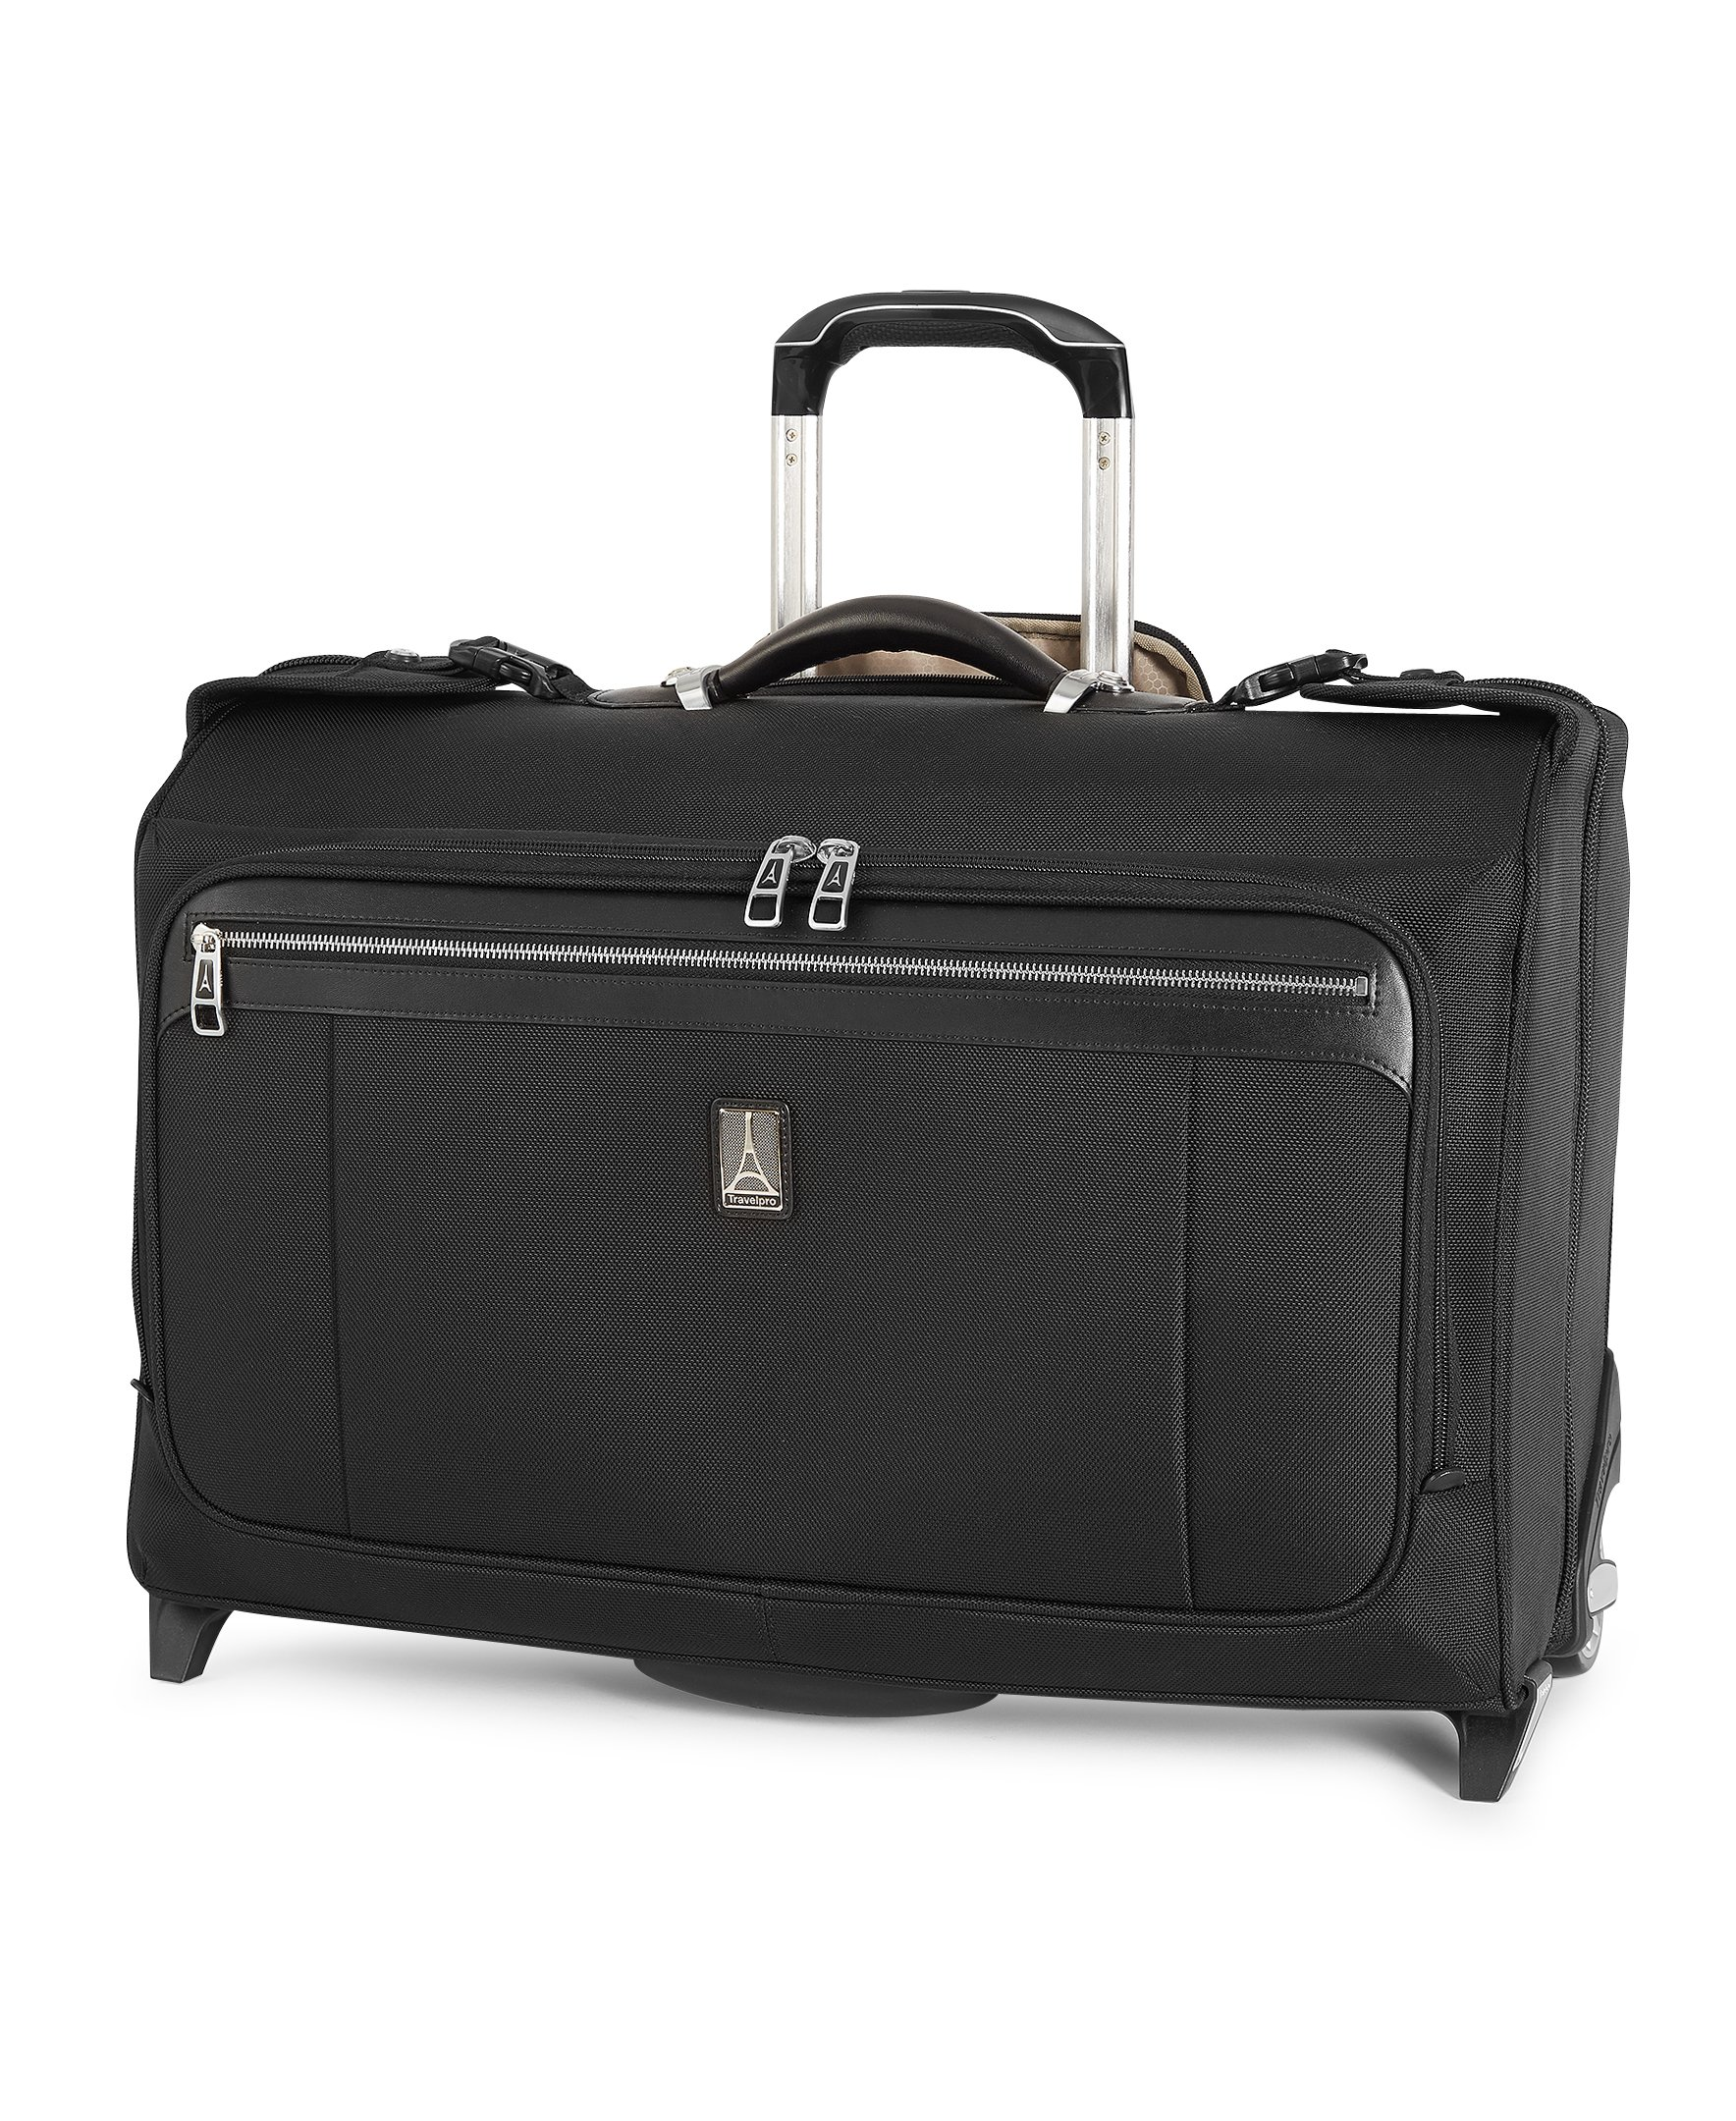 Travelpro Platinum Magna 2 22 Inch Carry-On Rolling Garment Bag, Black, One Size by Travelpro